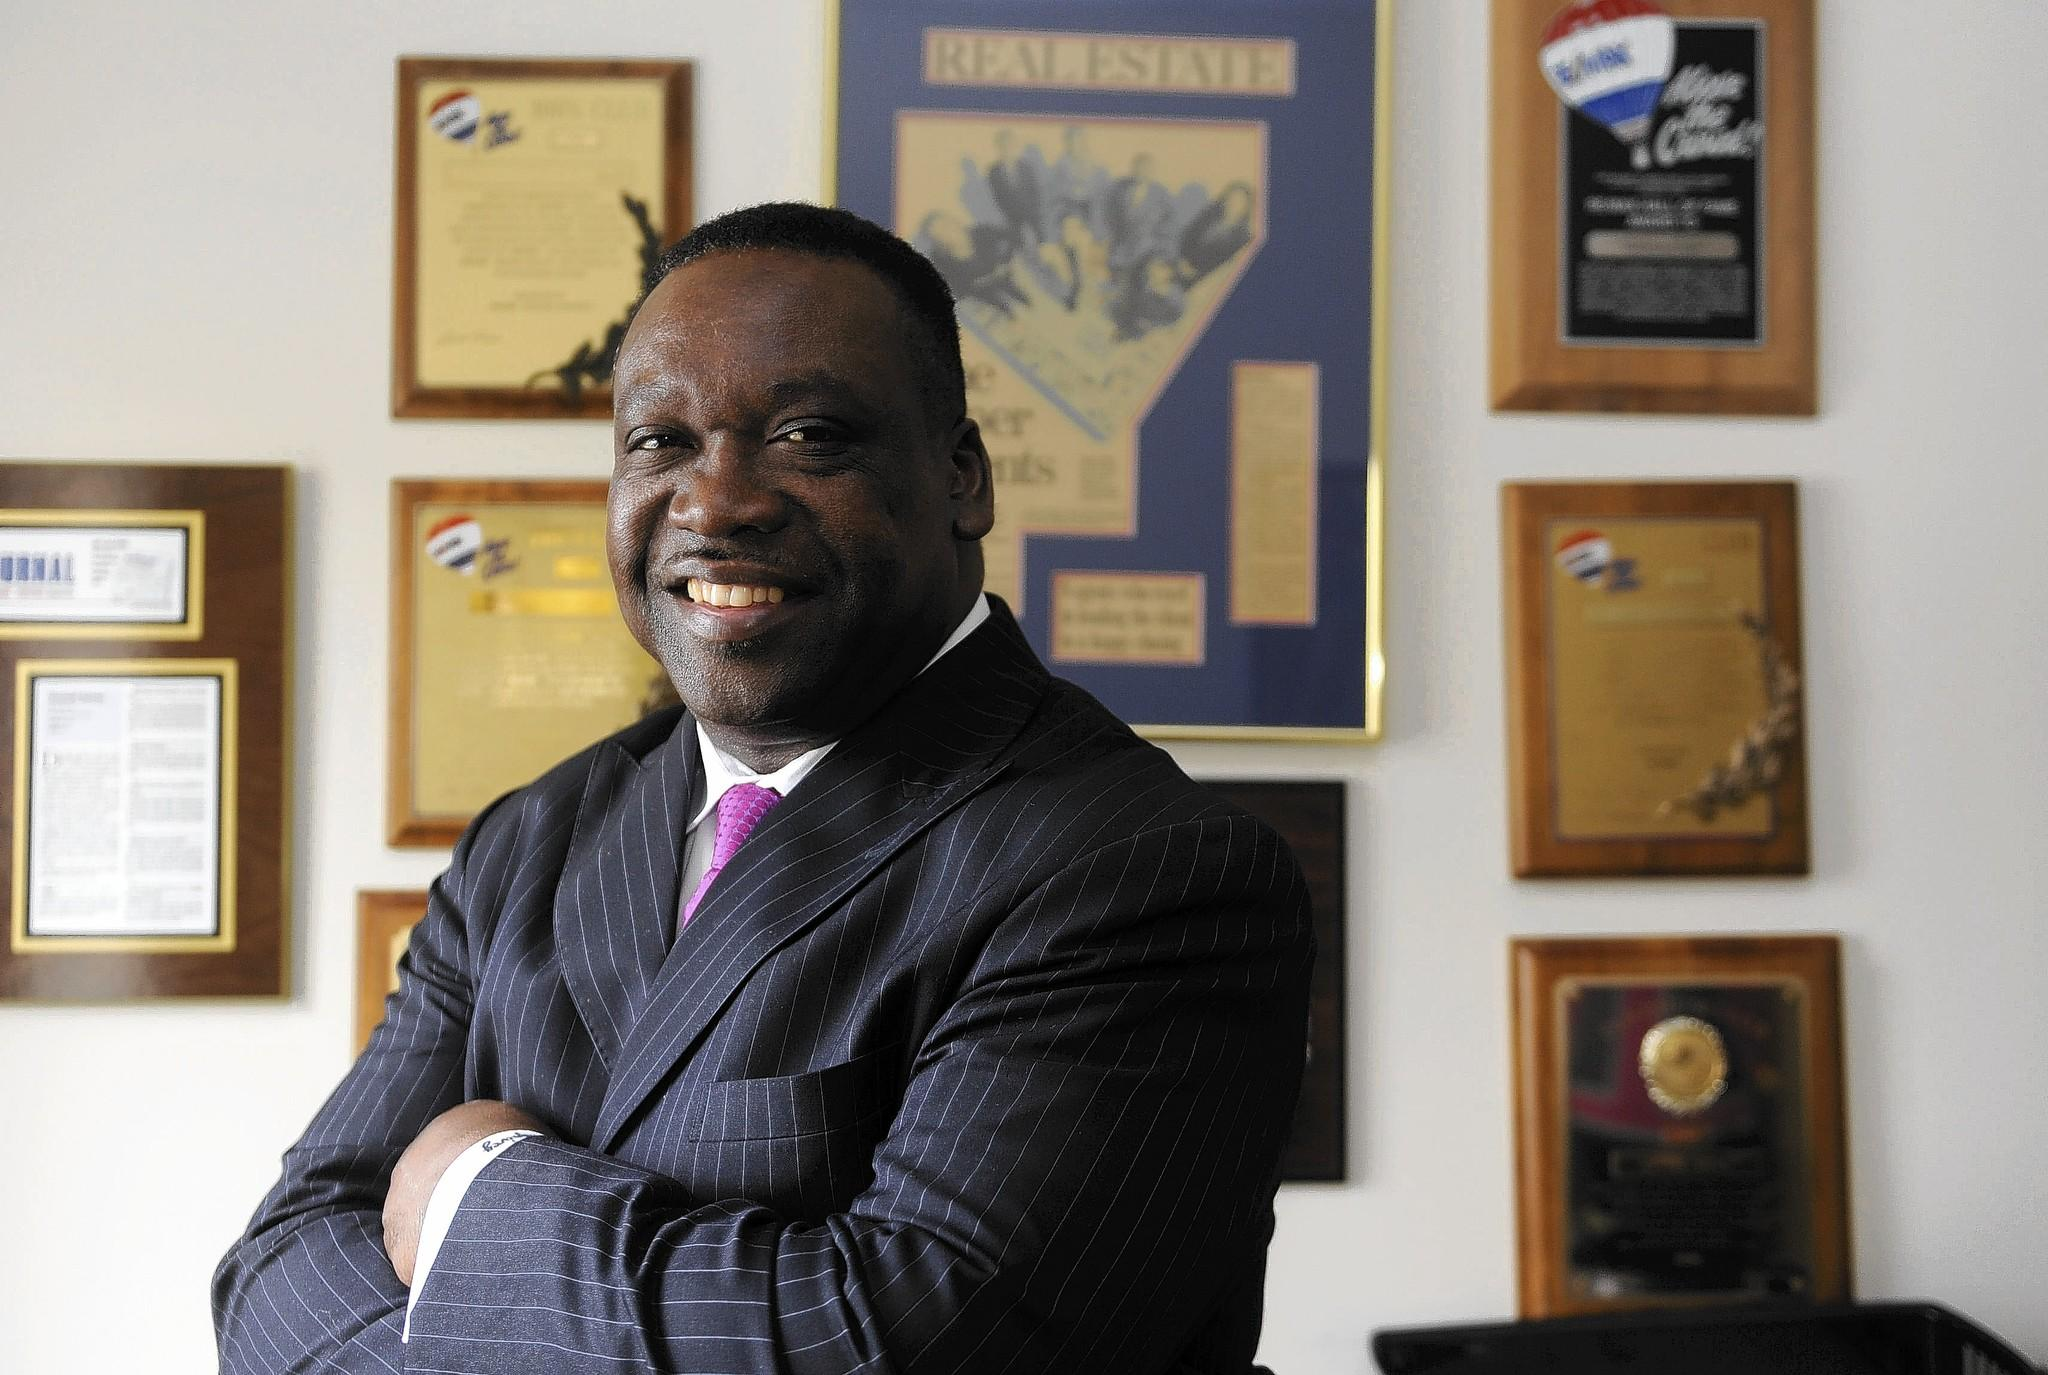 Donnell Spivey is the president of the National Association of Real Estate Brokers.